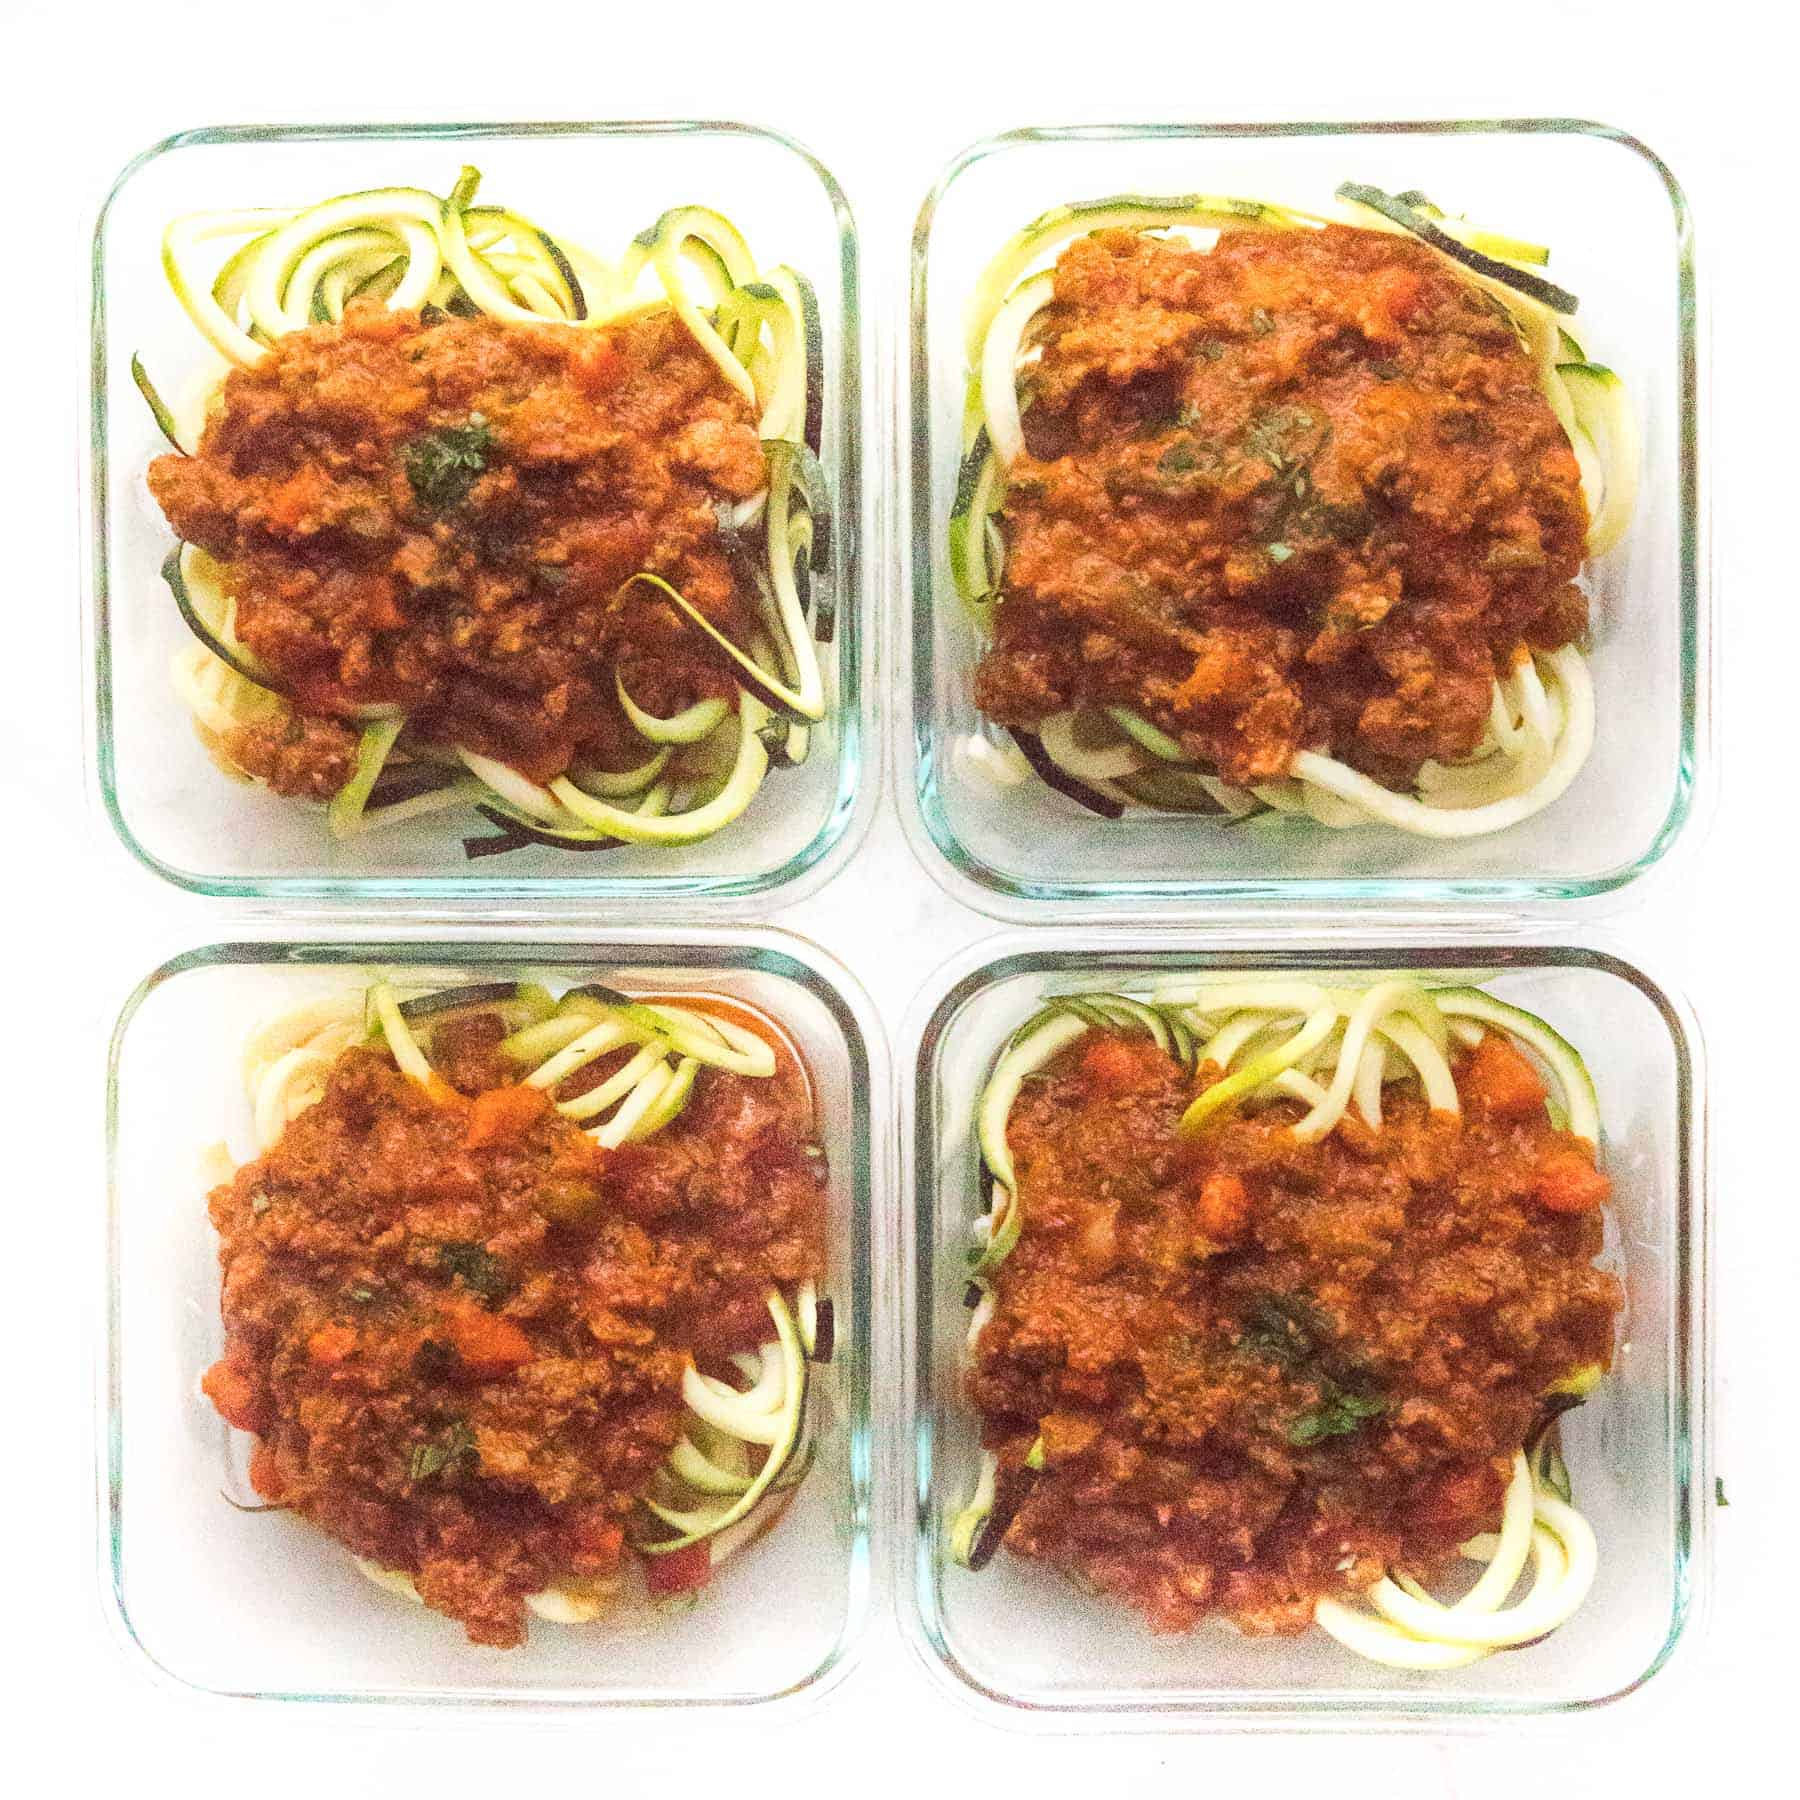 zucchini noodles with bolognese sauce in meal prep containers